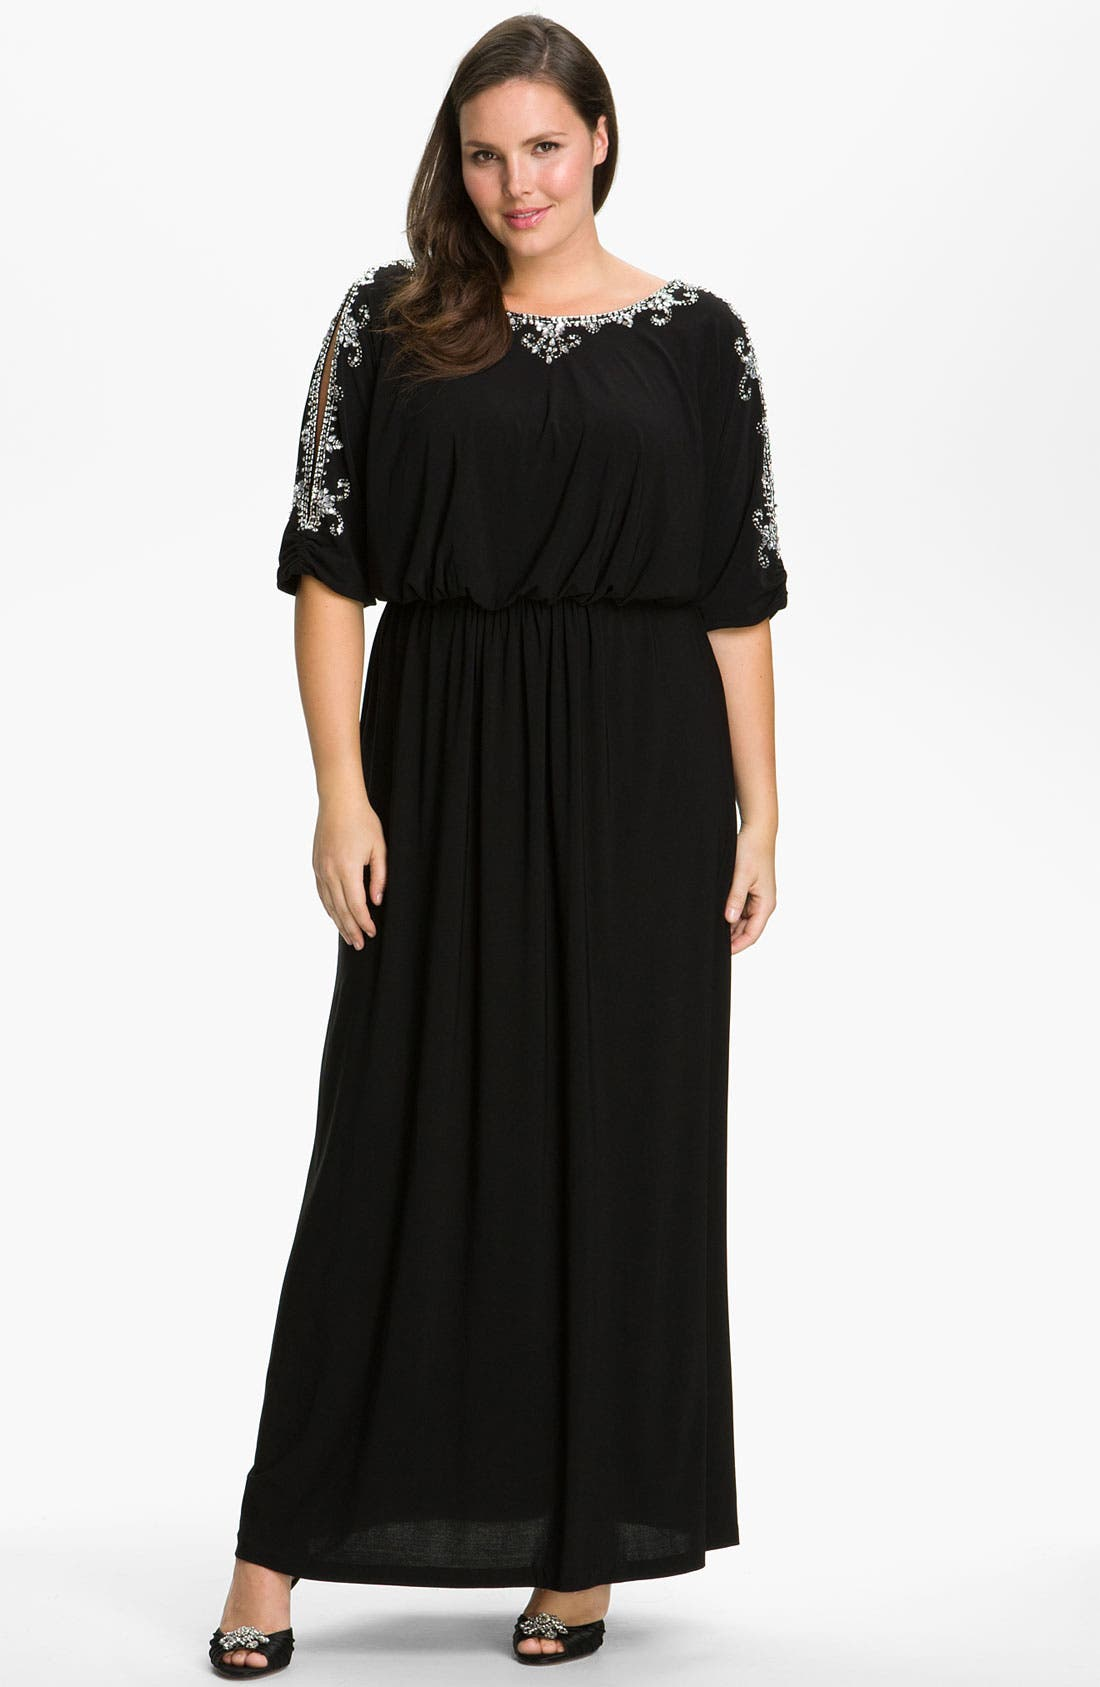 Alternate Image 1 Selected - Alex Evenings Beaded Cold Shoulder Blouson Dress (Plus)